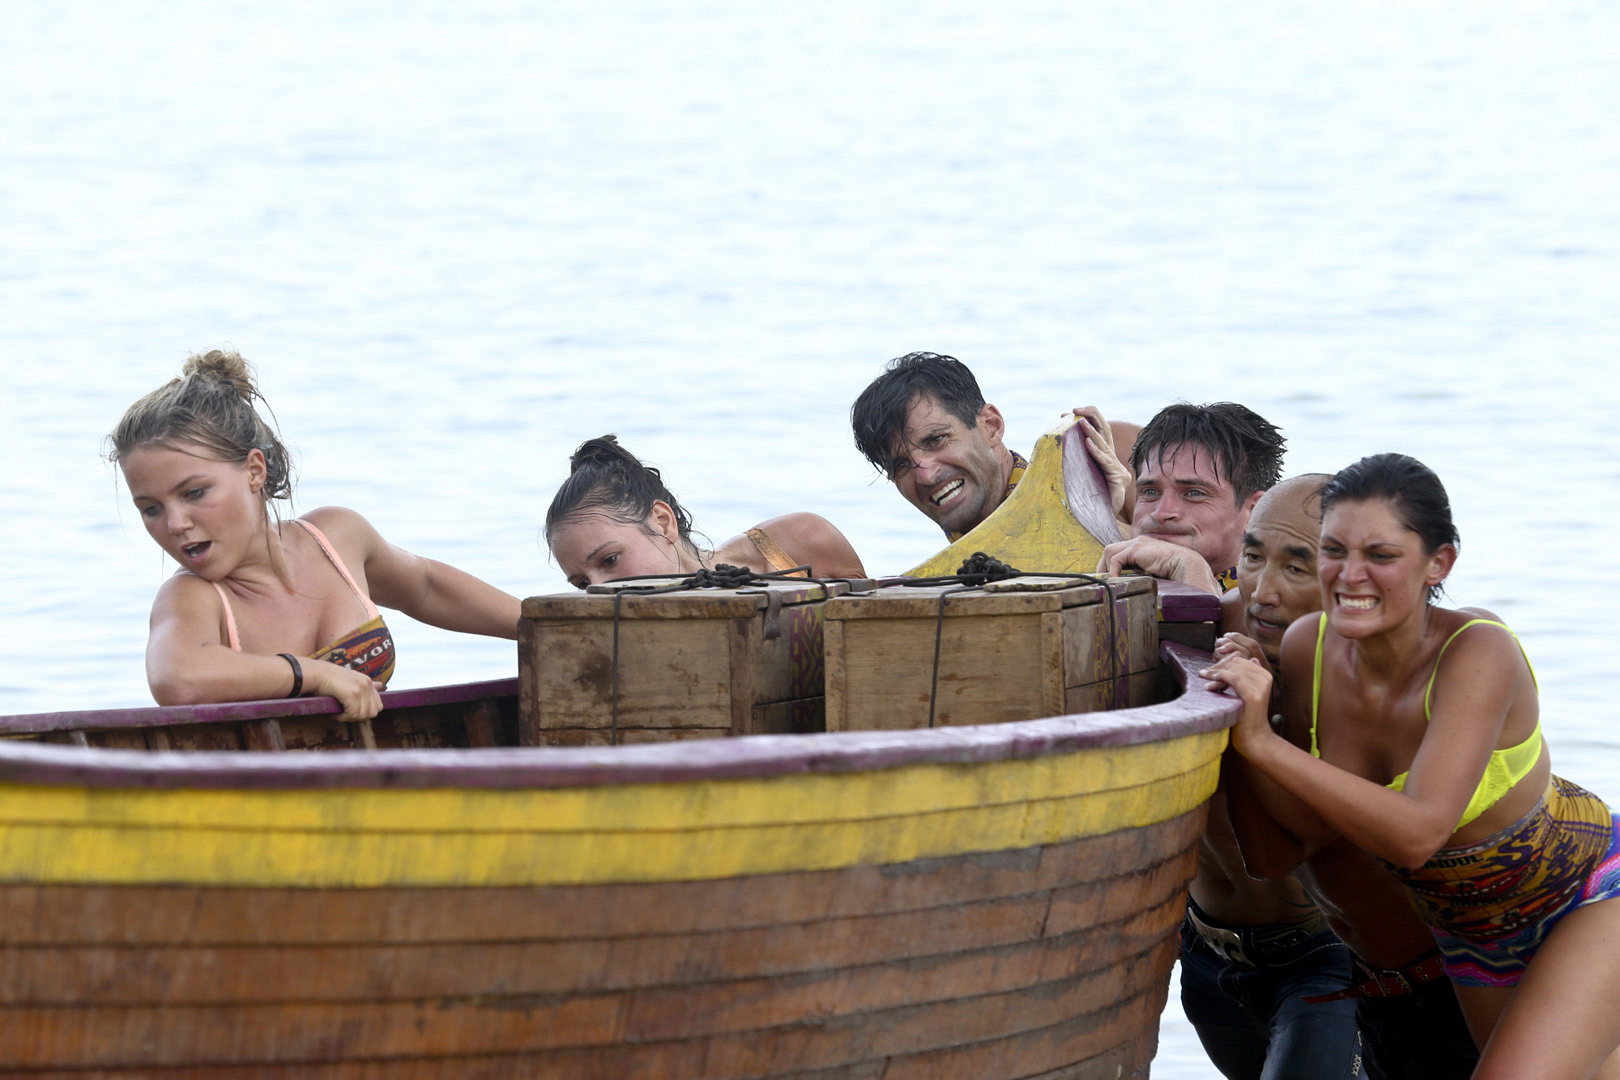 The six Beauty Tribe members use all their strength to get their boat to shore.